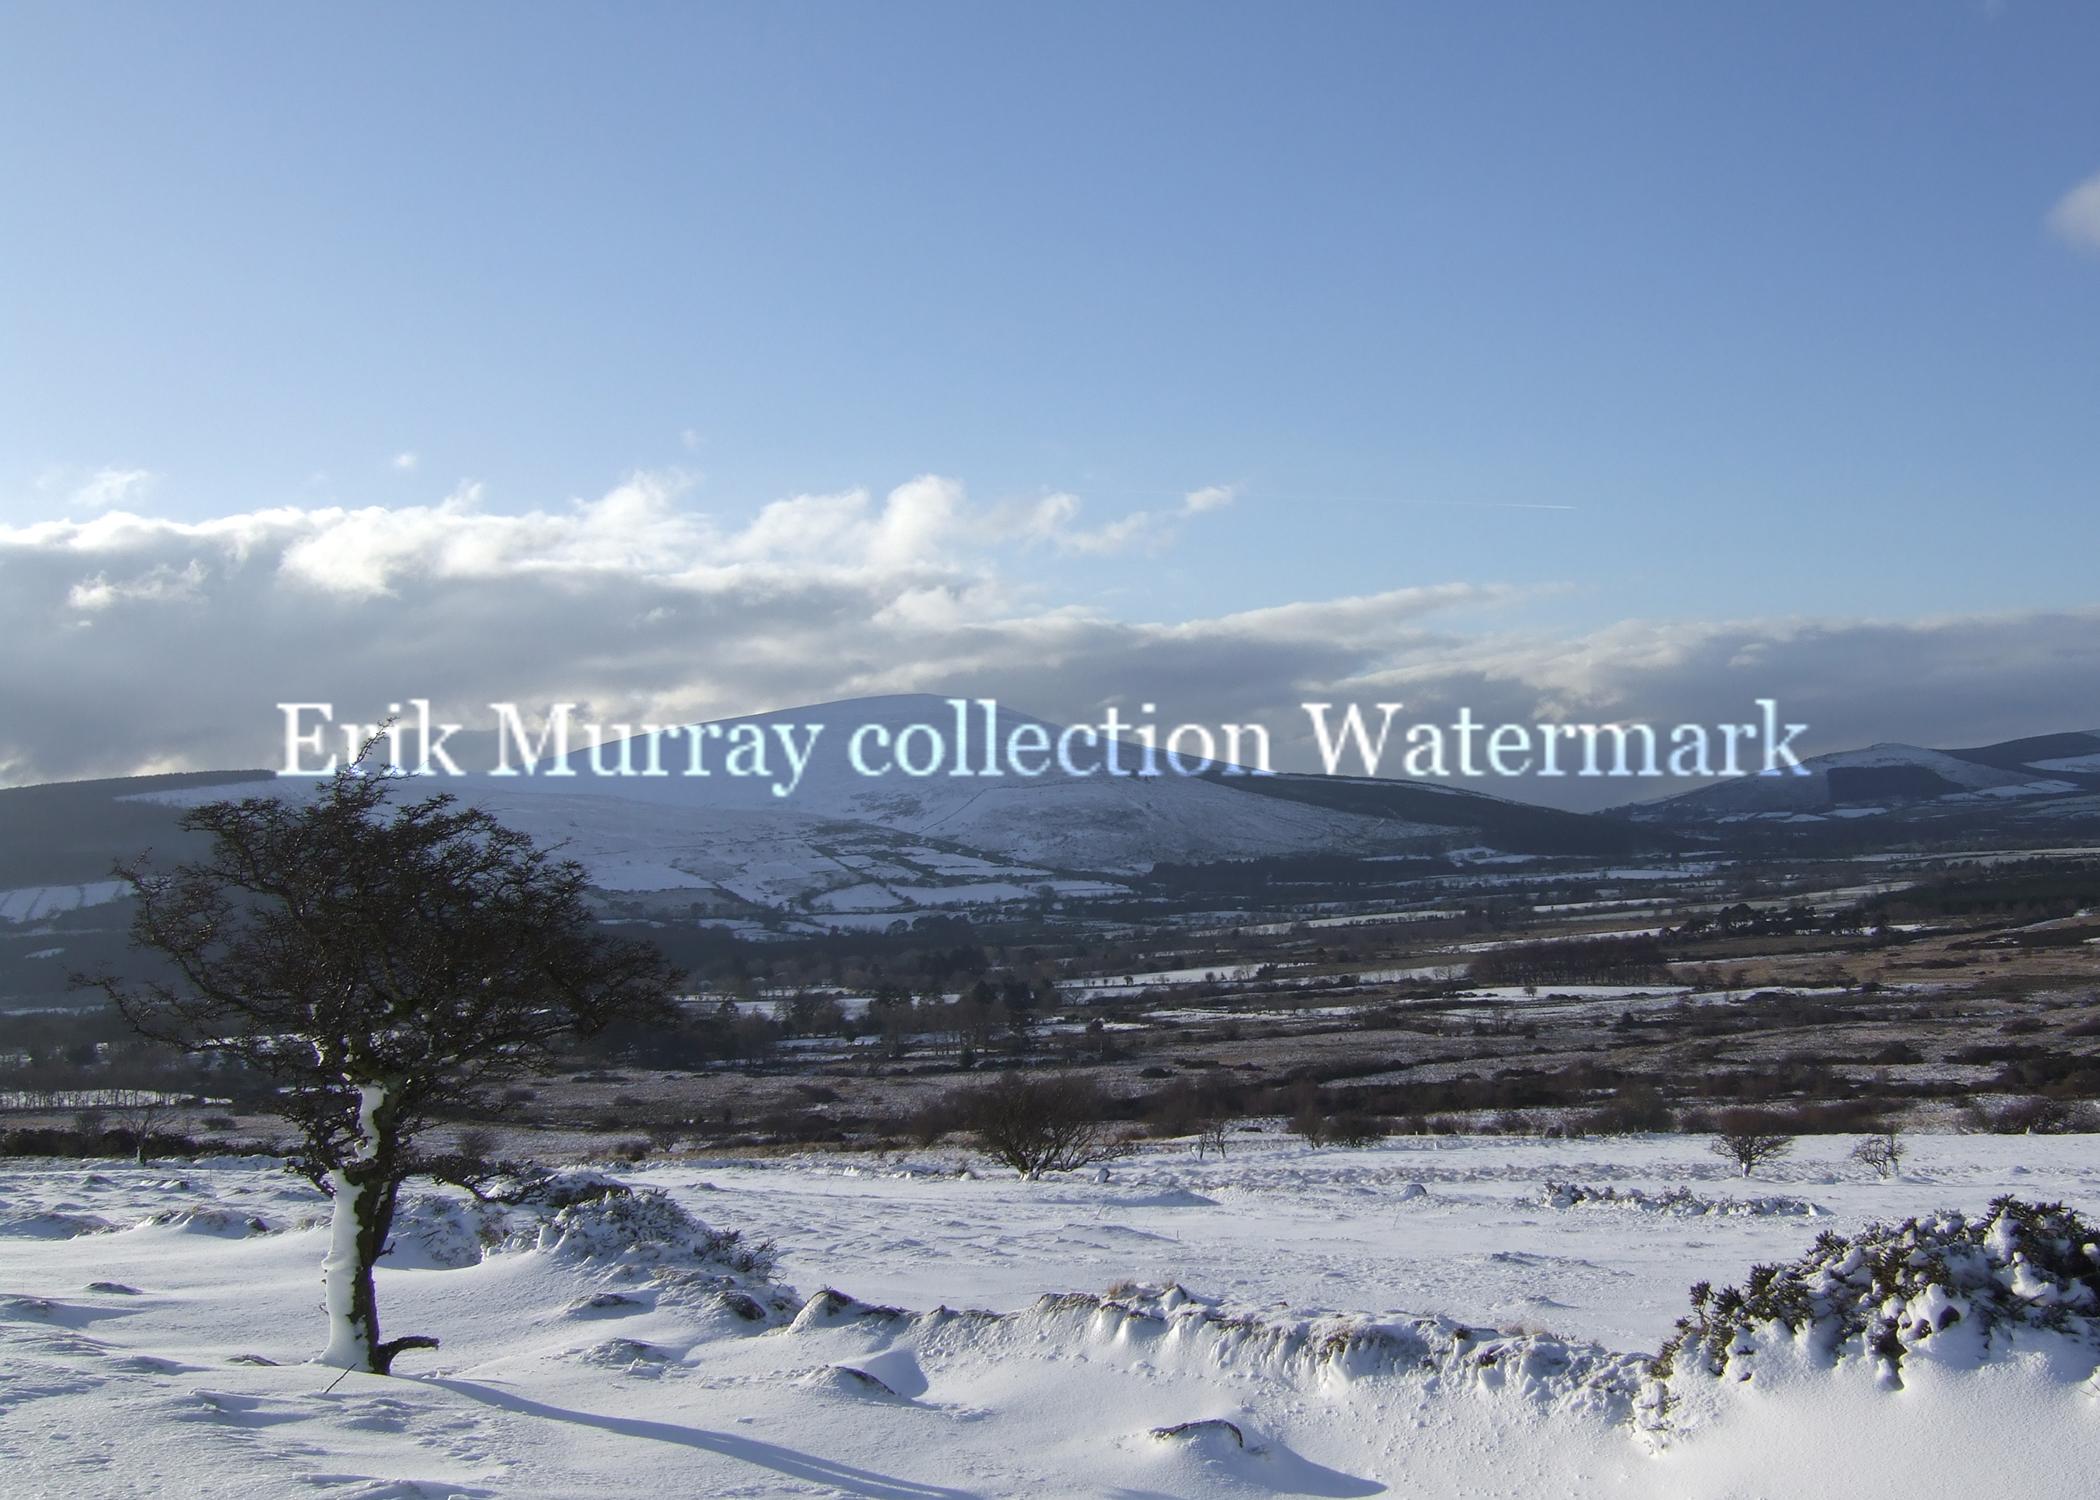 Wicklow Mountains Snow 2010 (Image 4) no boarder